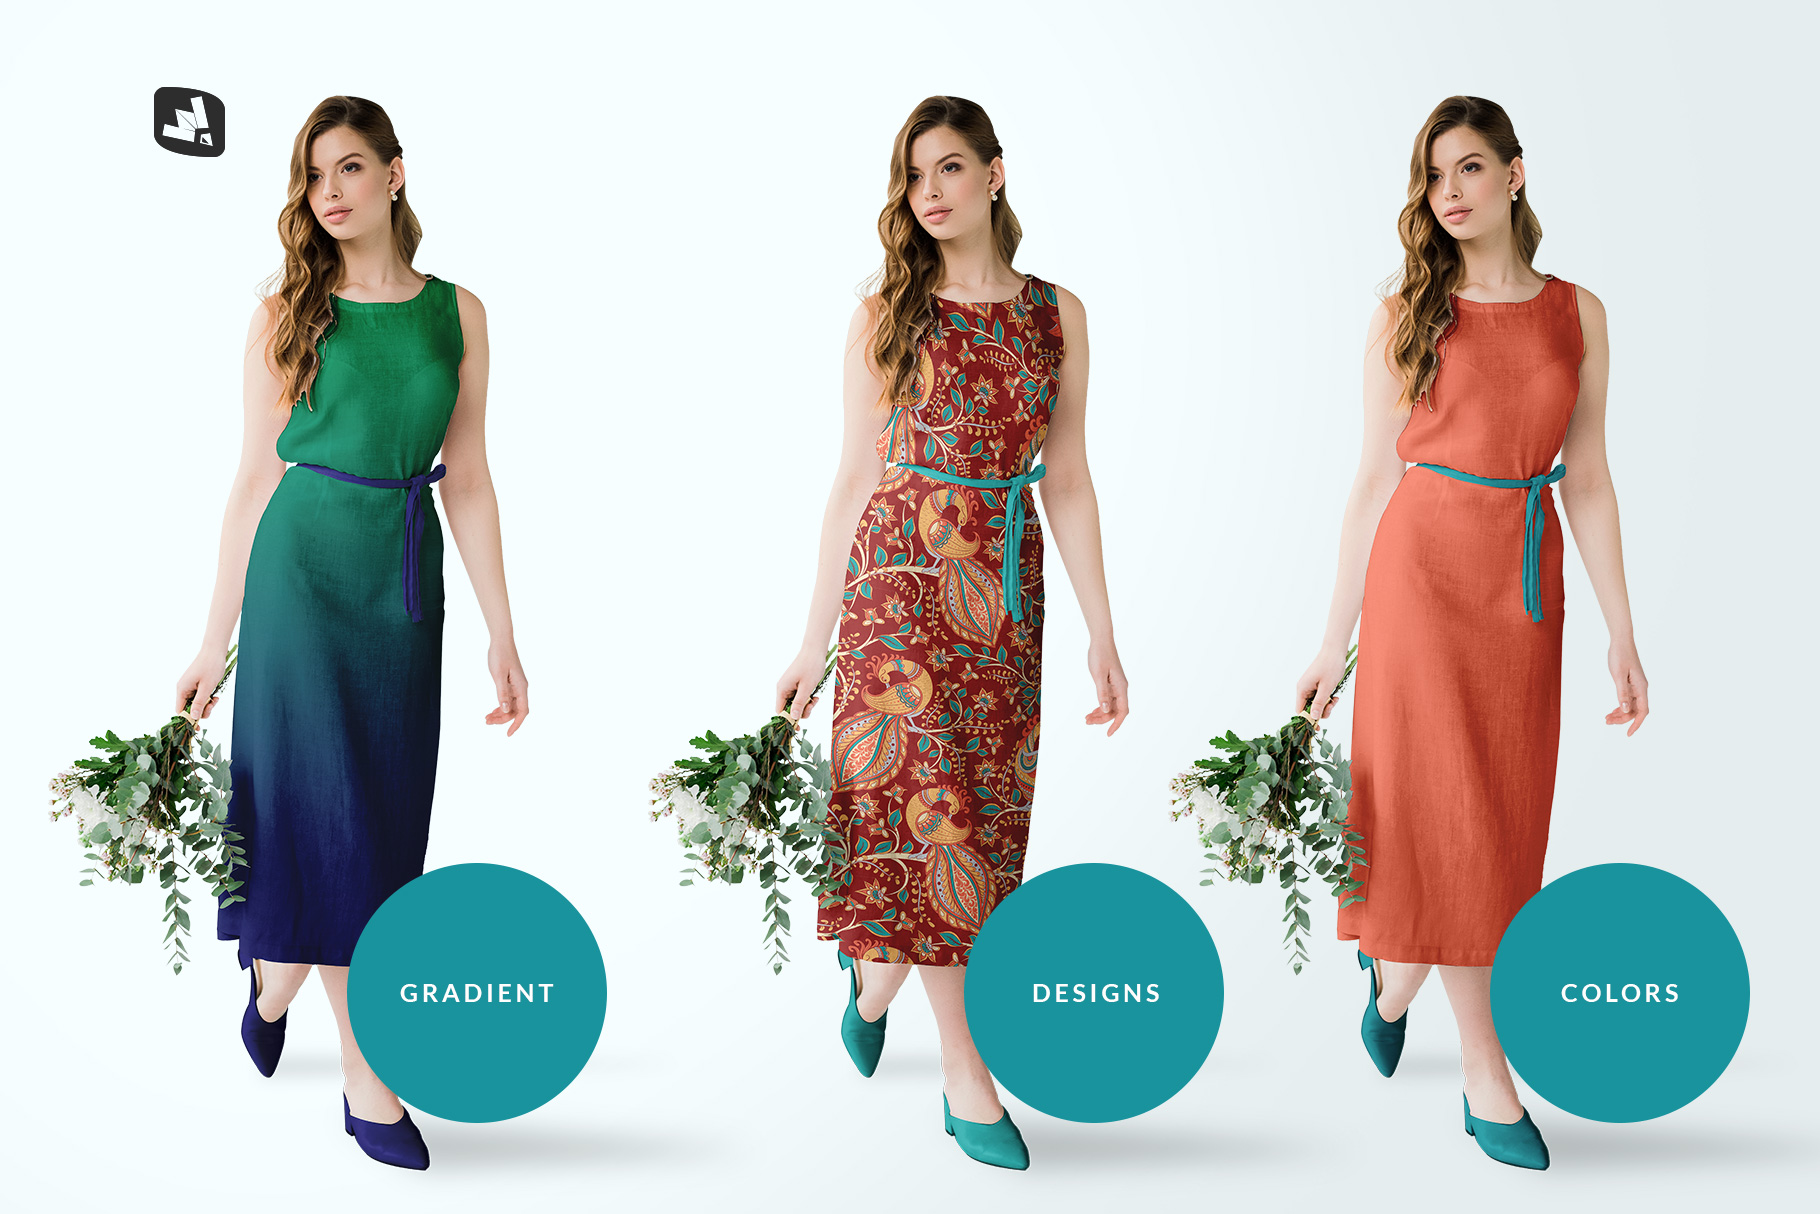 types of the female cotton summer dress mockup